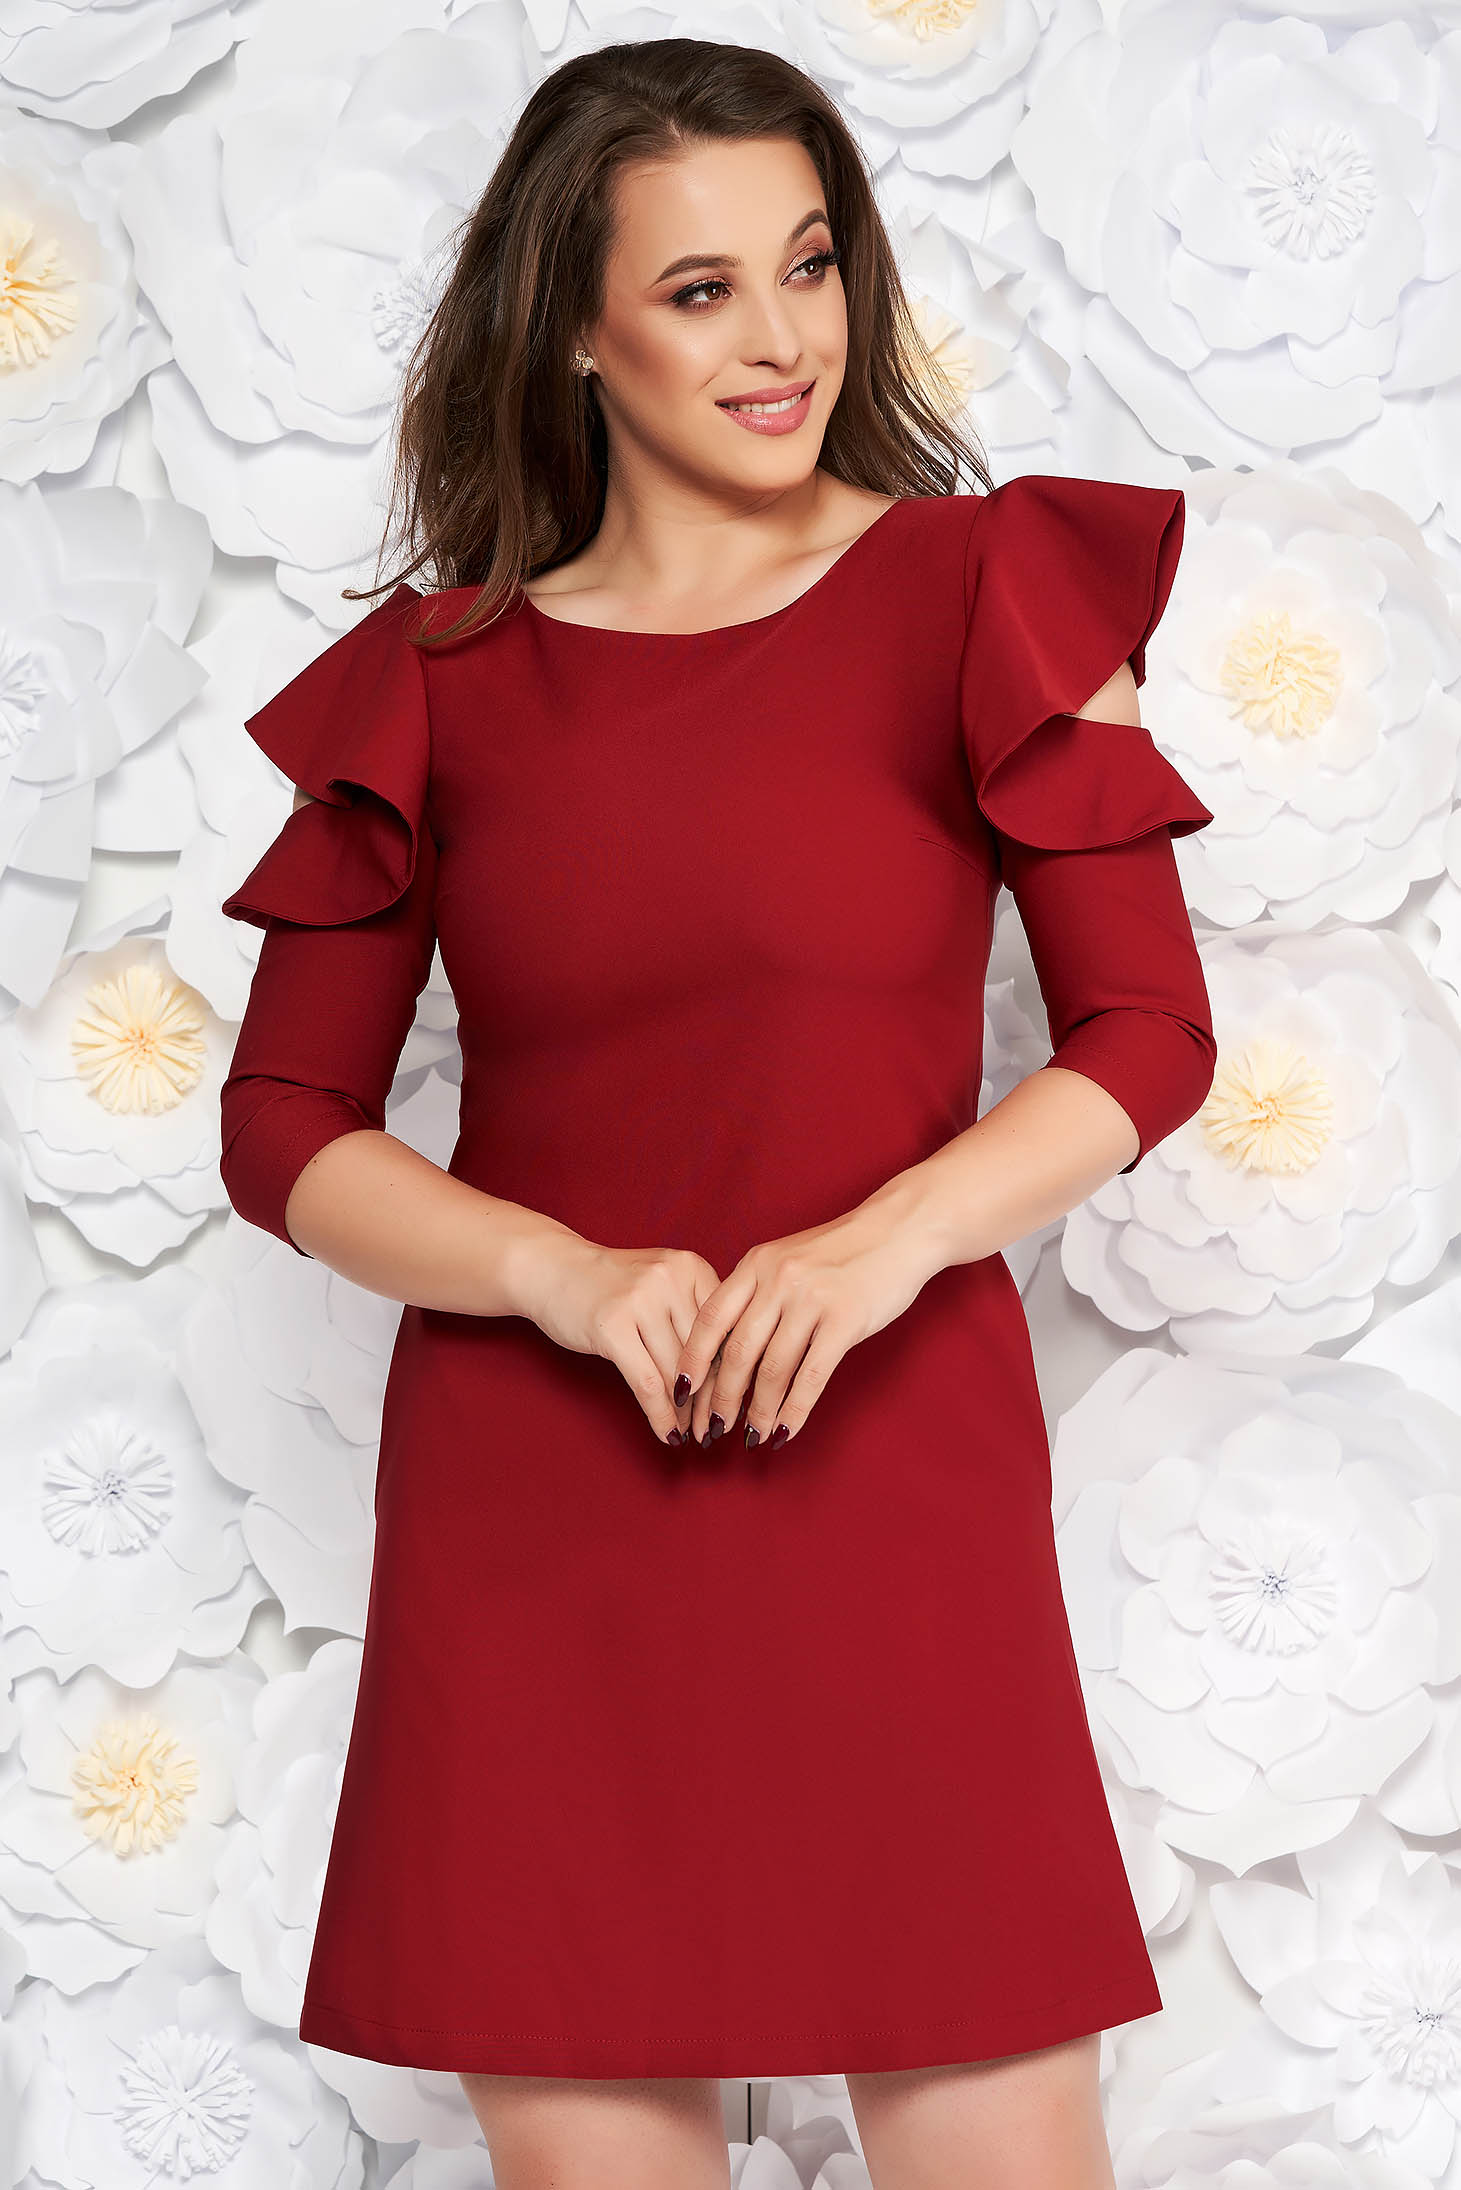 Burgundy daily elegant a-line dress slightly elastic fabric with ruffled sleeves